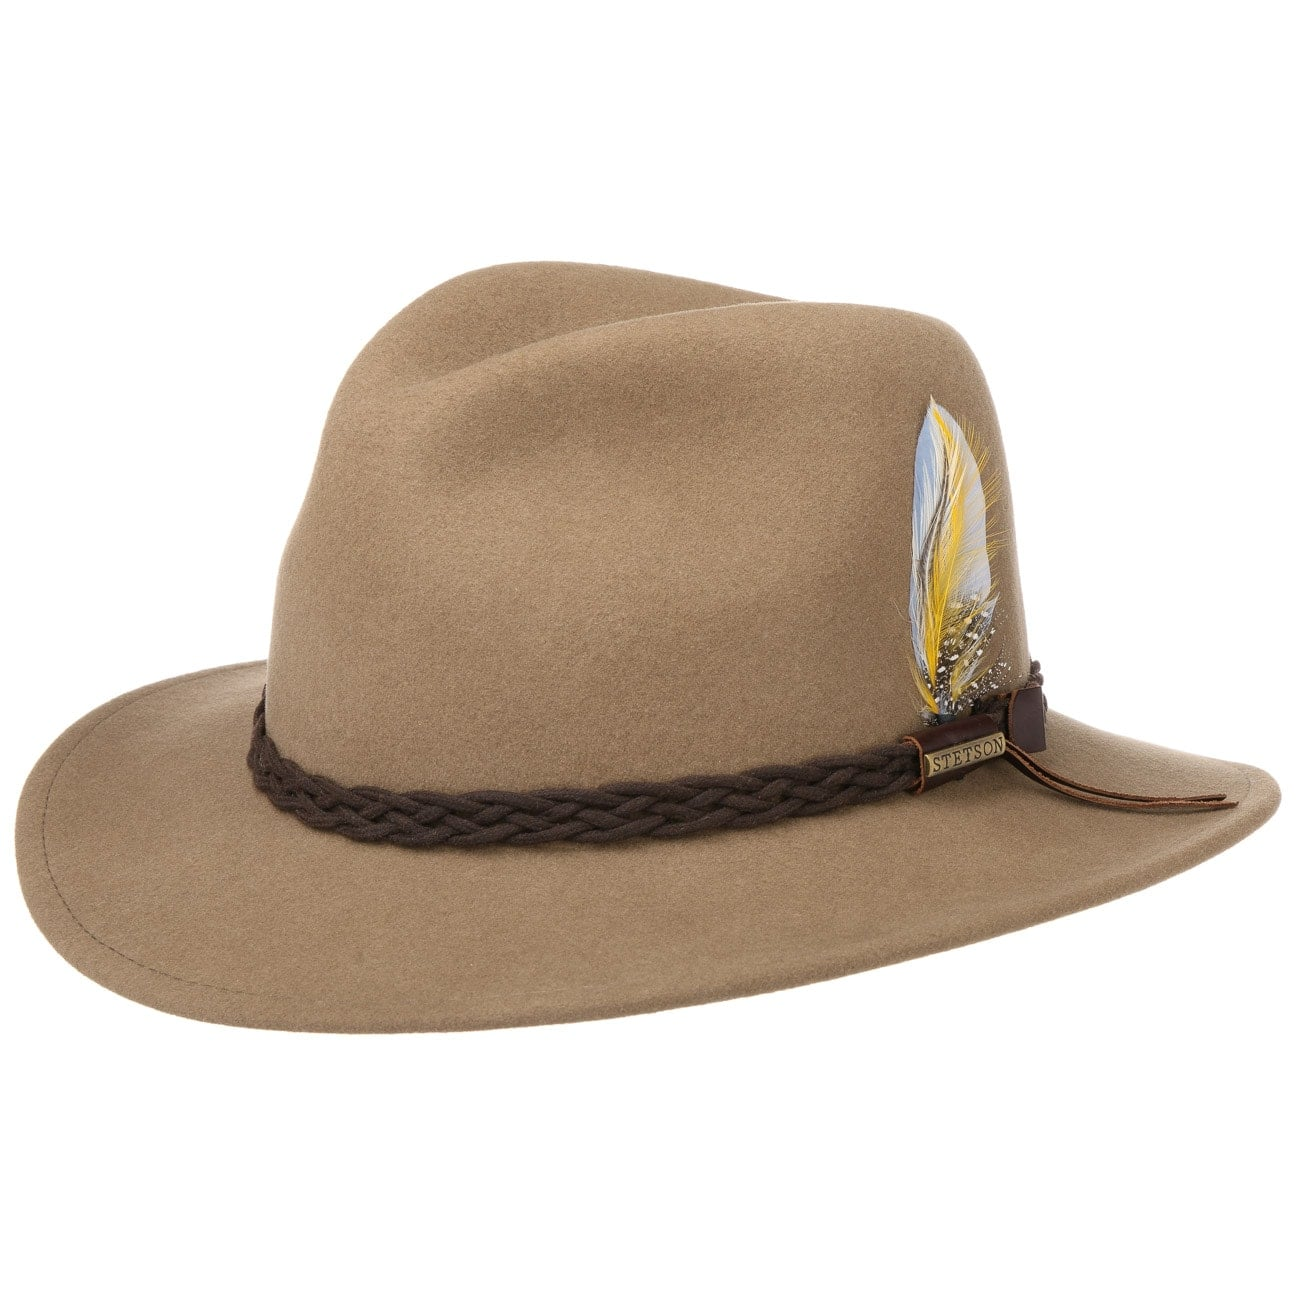 Sombrero Newark VitaFelt Outdoor by Stetson